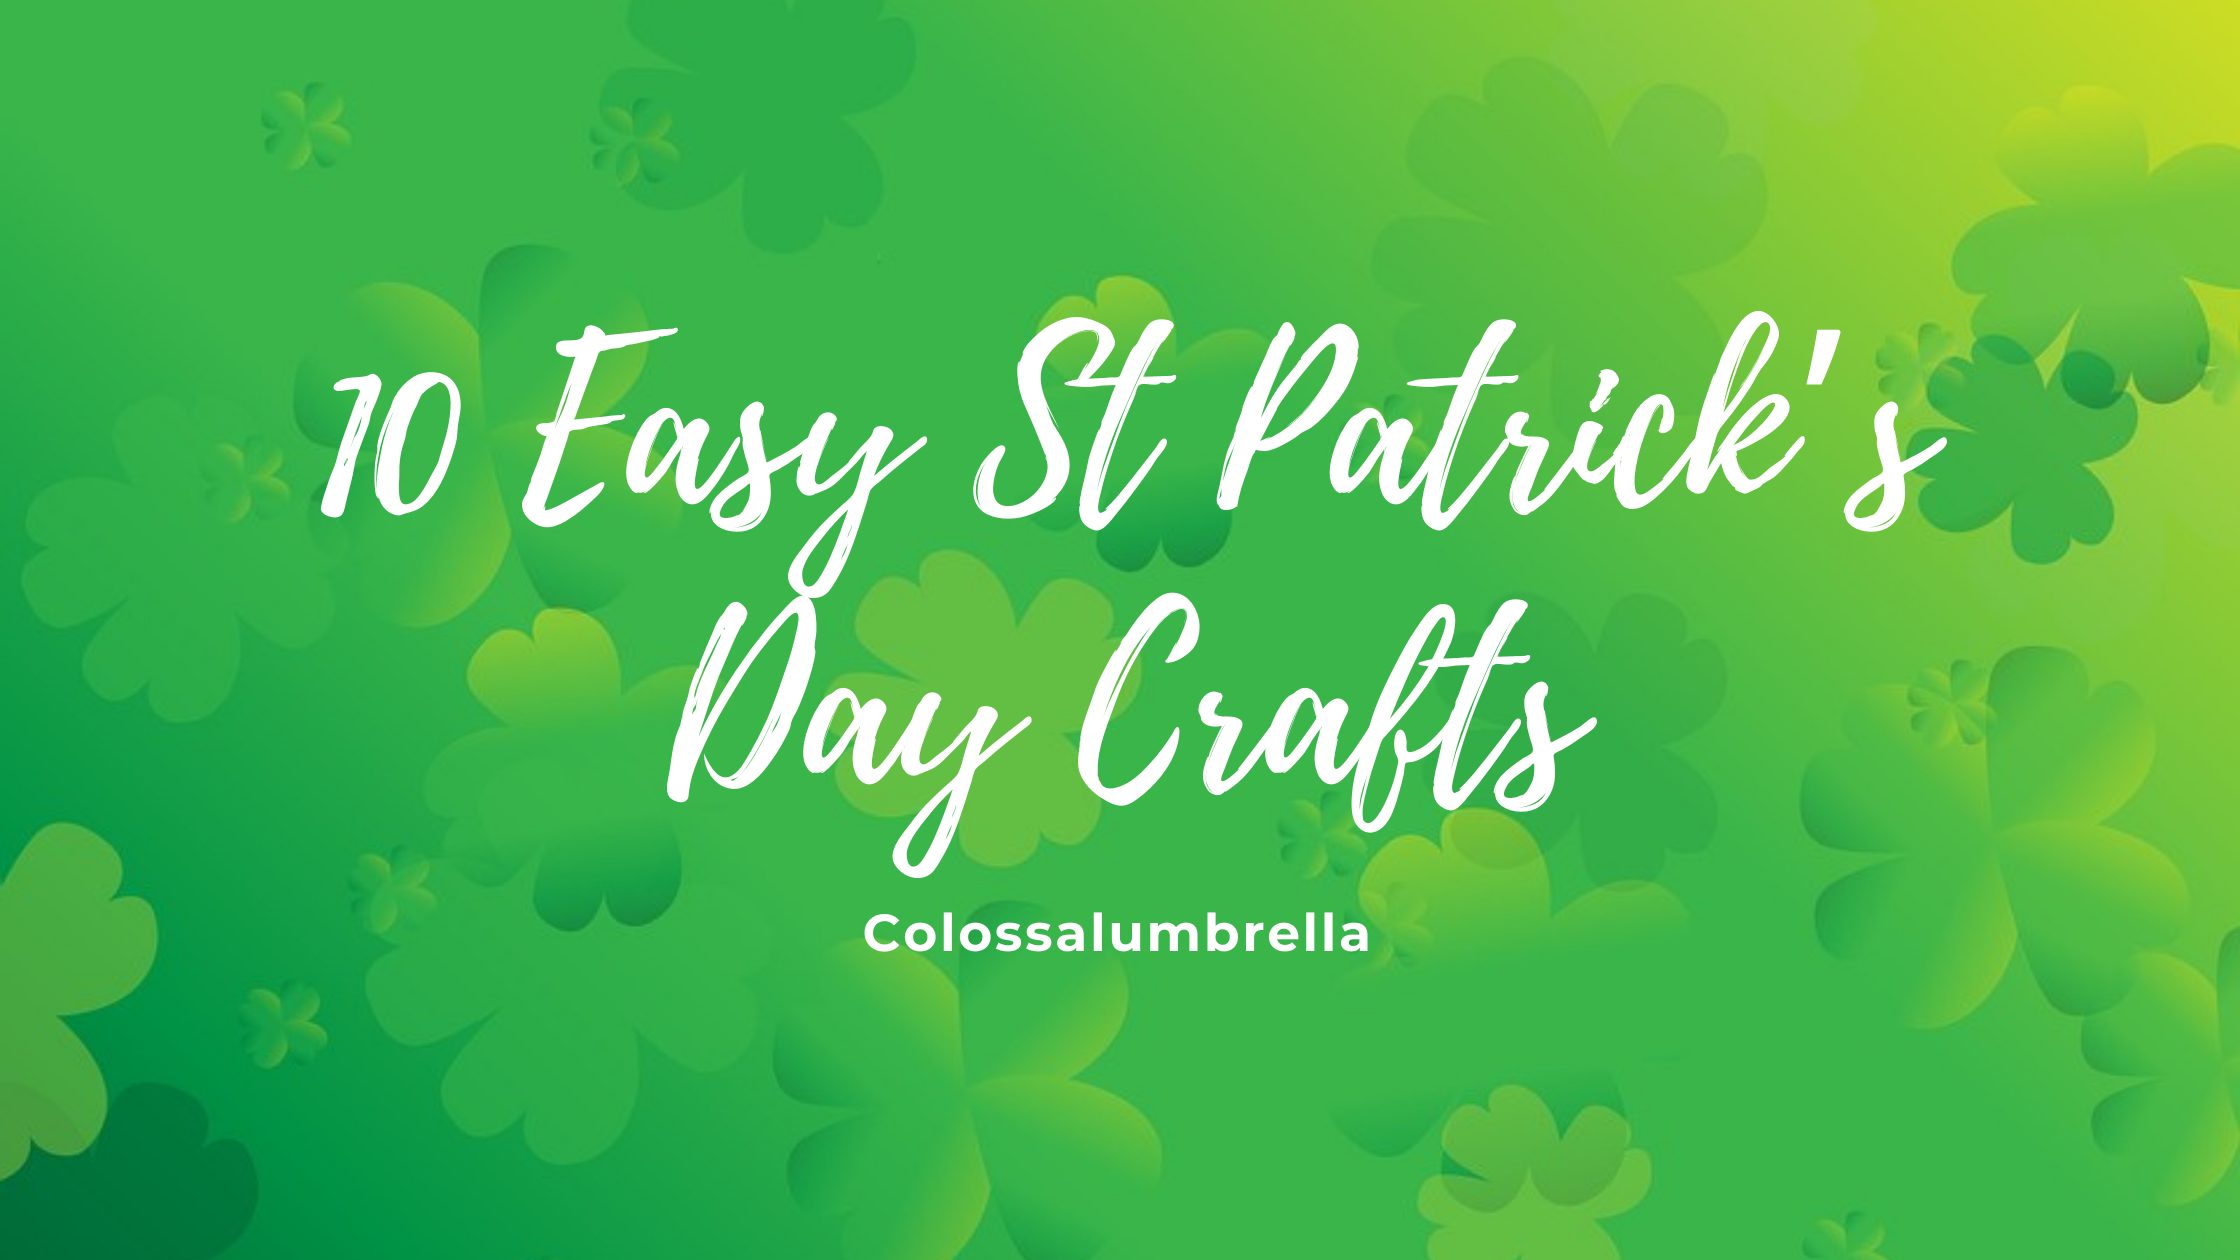 10 Easy St Patrick's Day Crafts – Welcome the Leprechauns